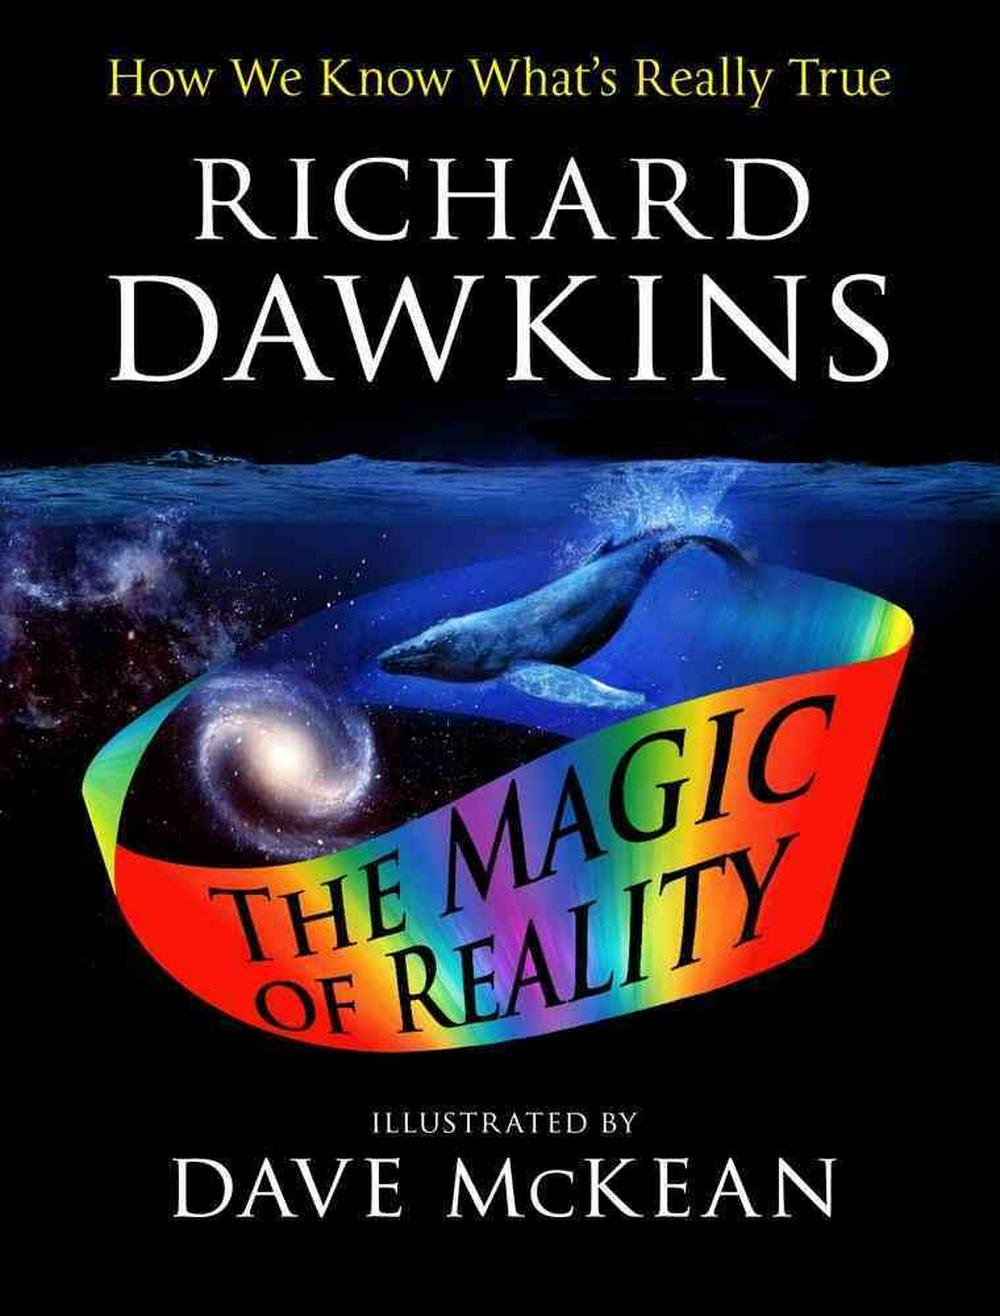 The Illustrated Magic of Reality